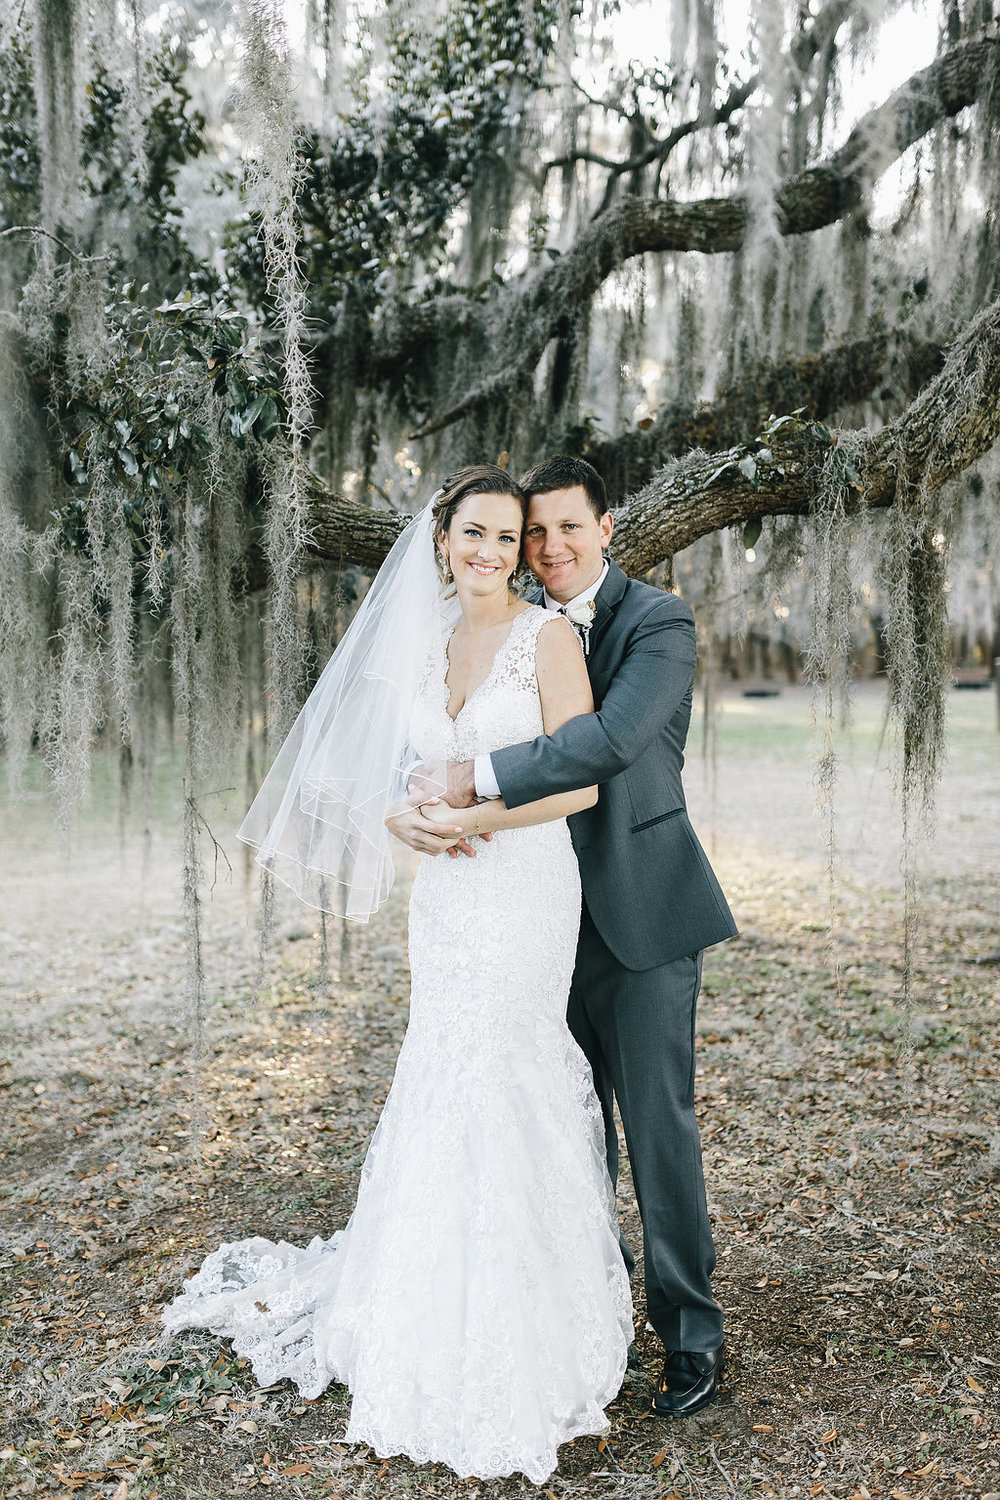 Katie + Ryan's Lowcountry Wedding in Savannah, Georgia by Mackensey Alexander